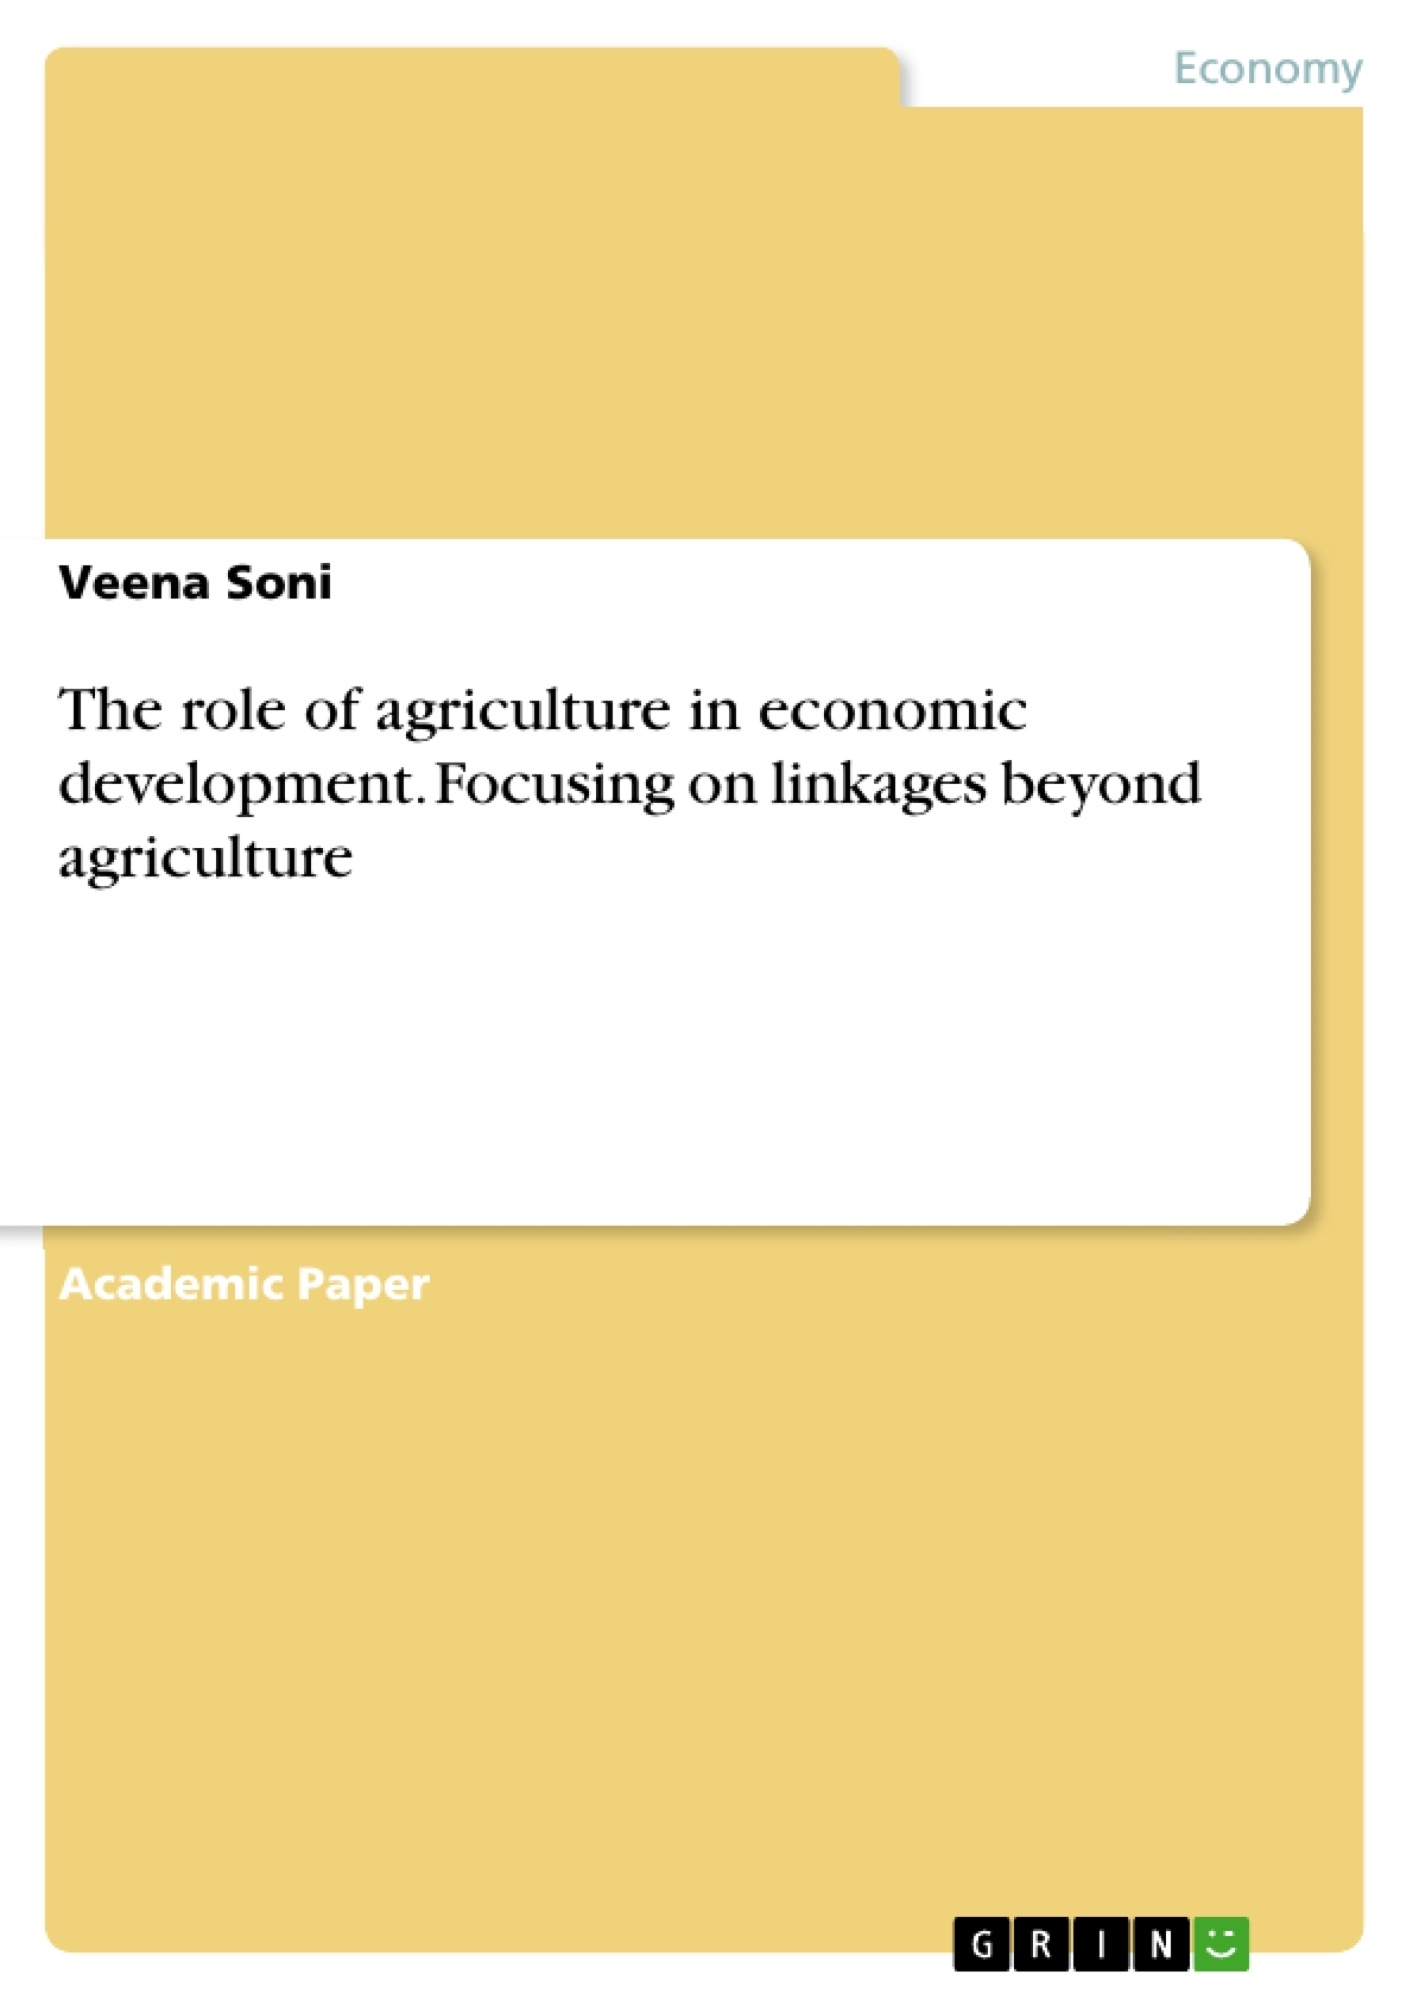 Title: The role of agriculture in economic development. Focusing on linkages beyond agriculture